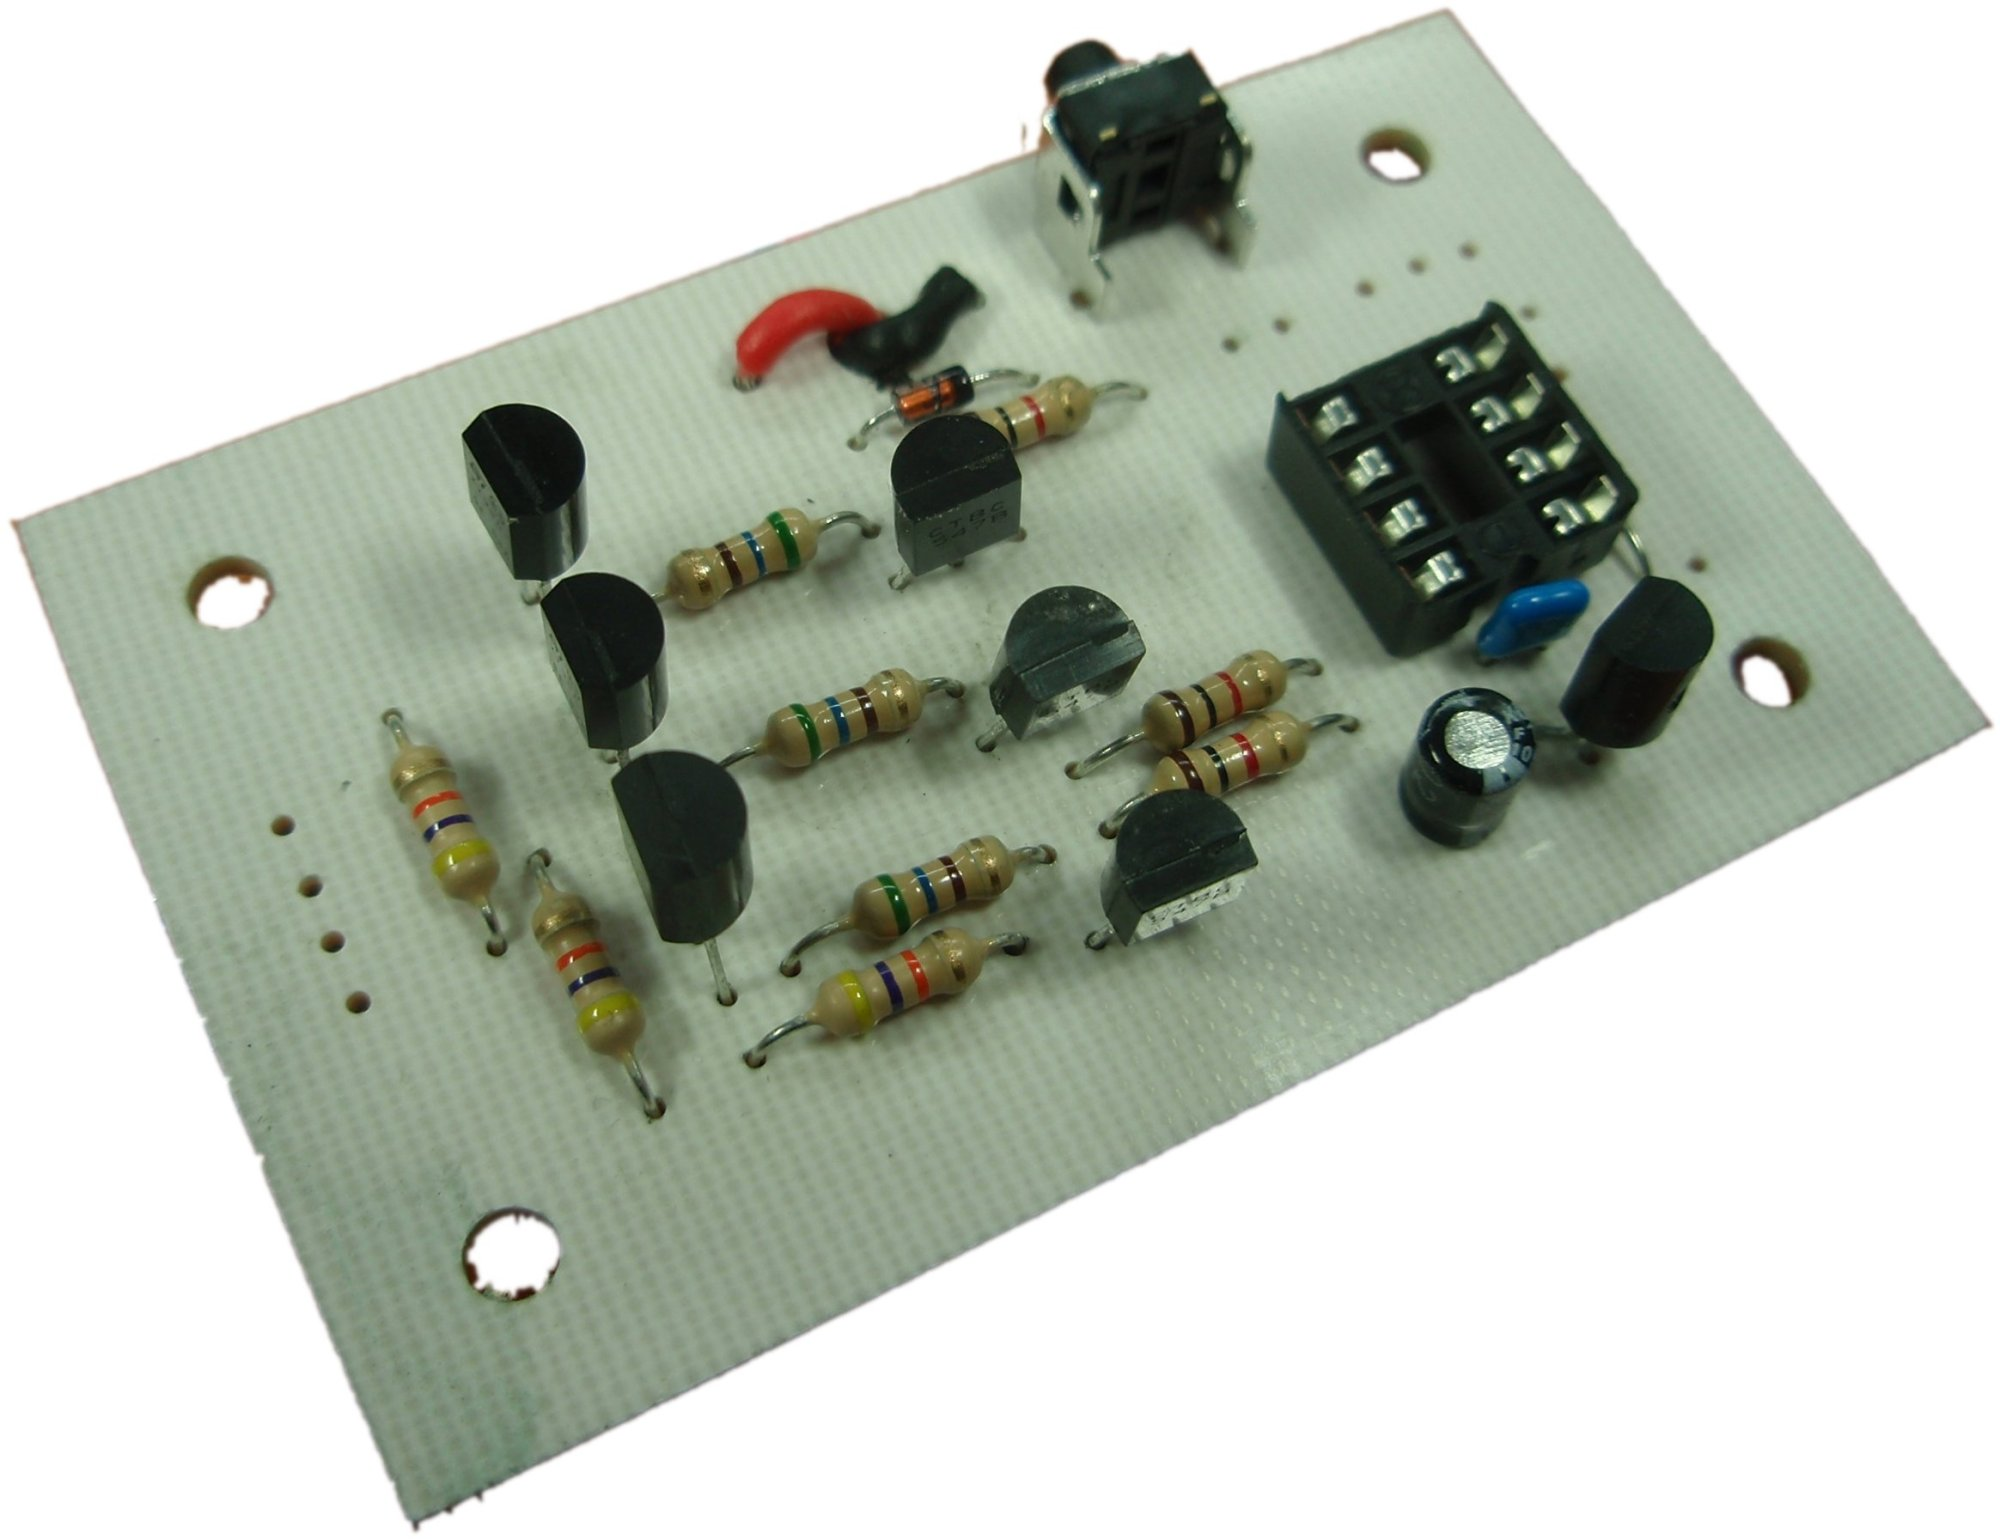 hight resolution of assembled board from schematic 1